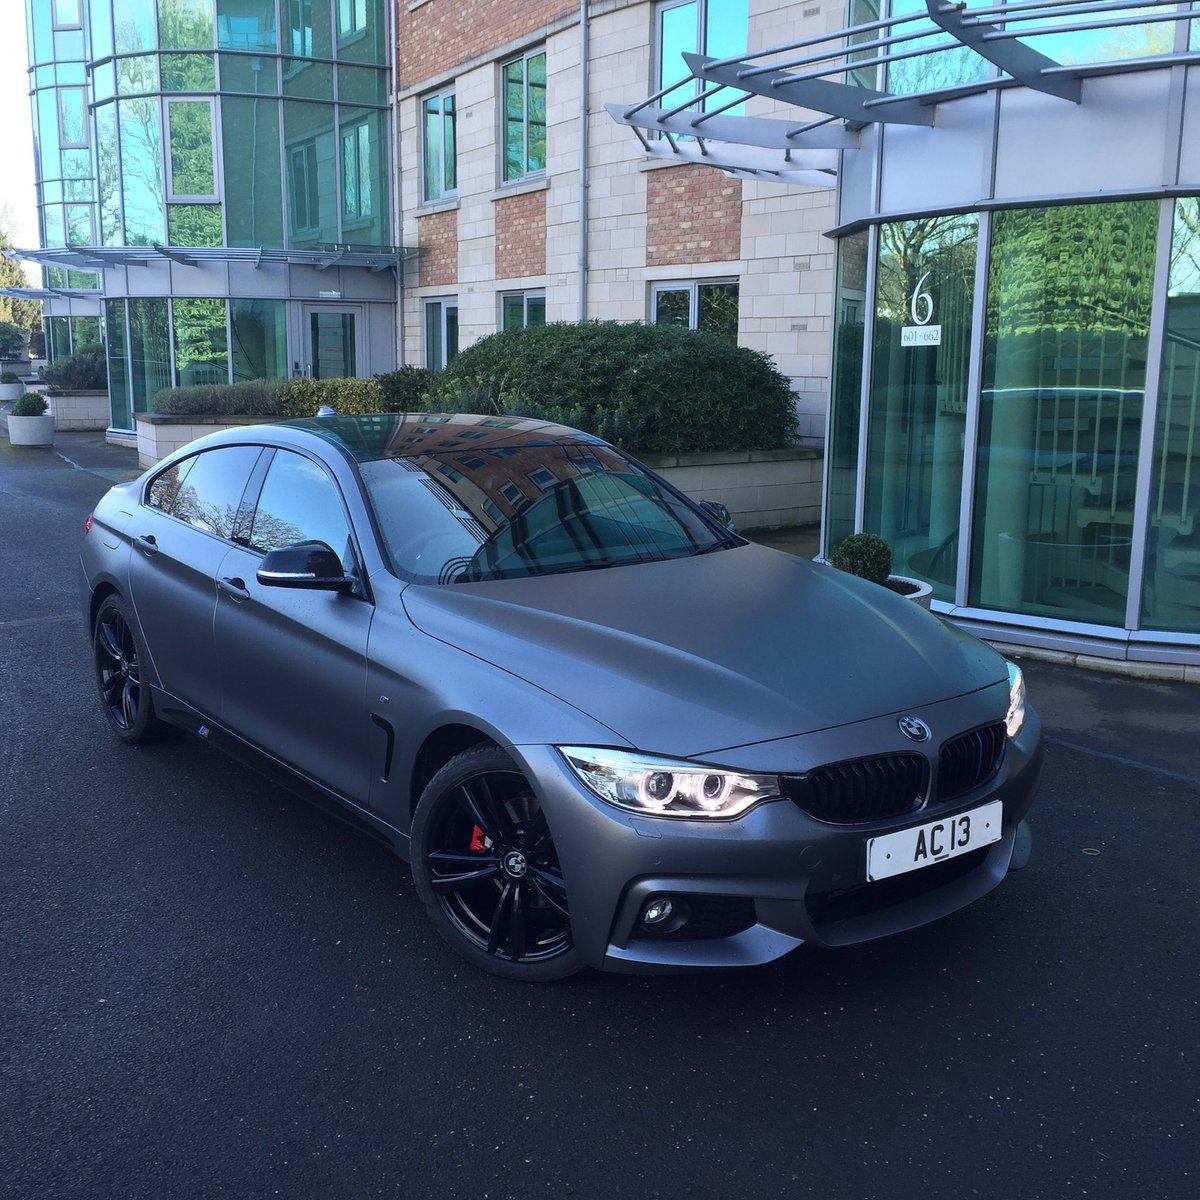 Ac13 Premier On Twitter Bmw 4gt Wrapped In Matt Grey With Black Wheels And Red Brakes Bmw 4series Ac13premier Https T Co Byamwdrtge